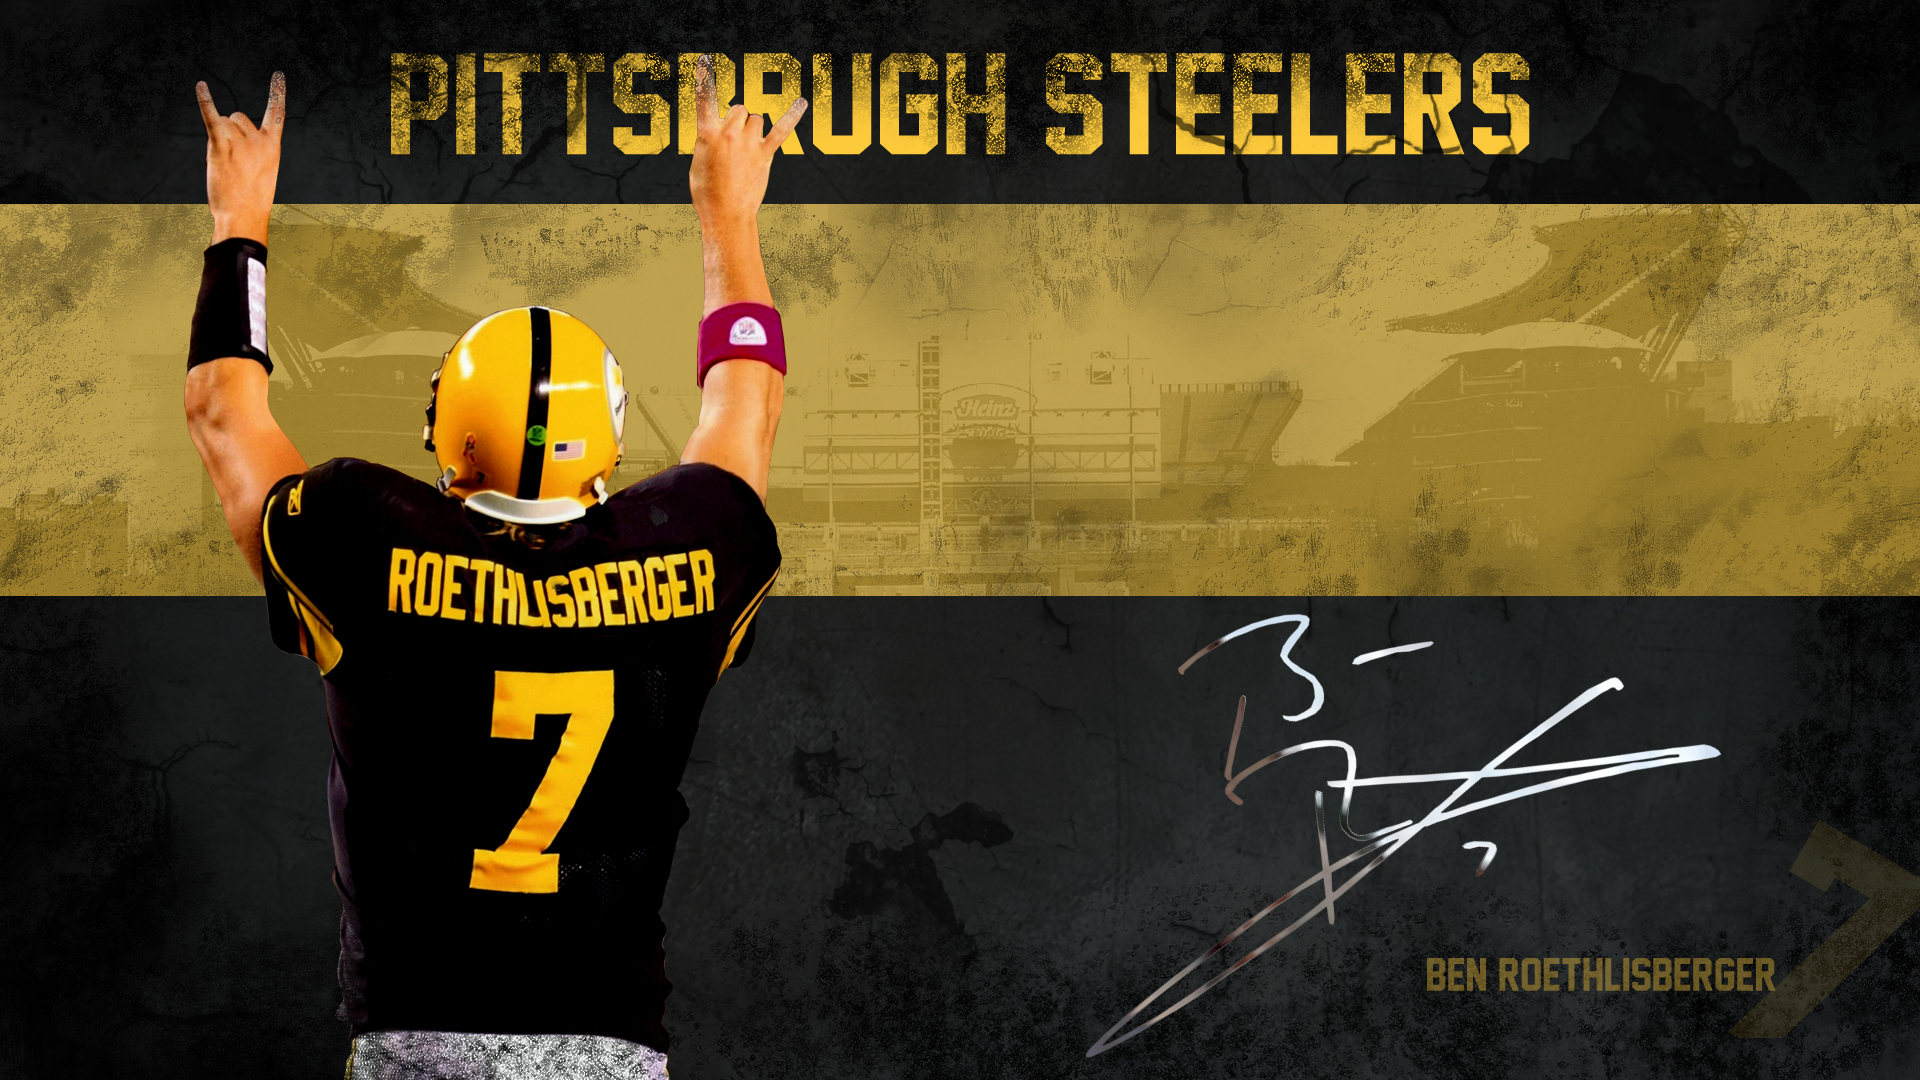 New Pittsburgh Steelers wallpaper background Pittsburgh Steelers 1920x1080